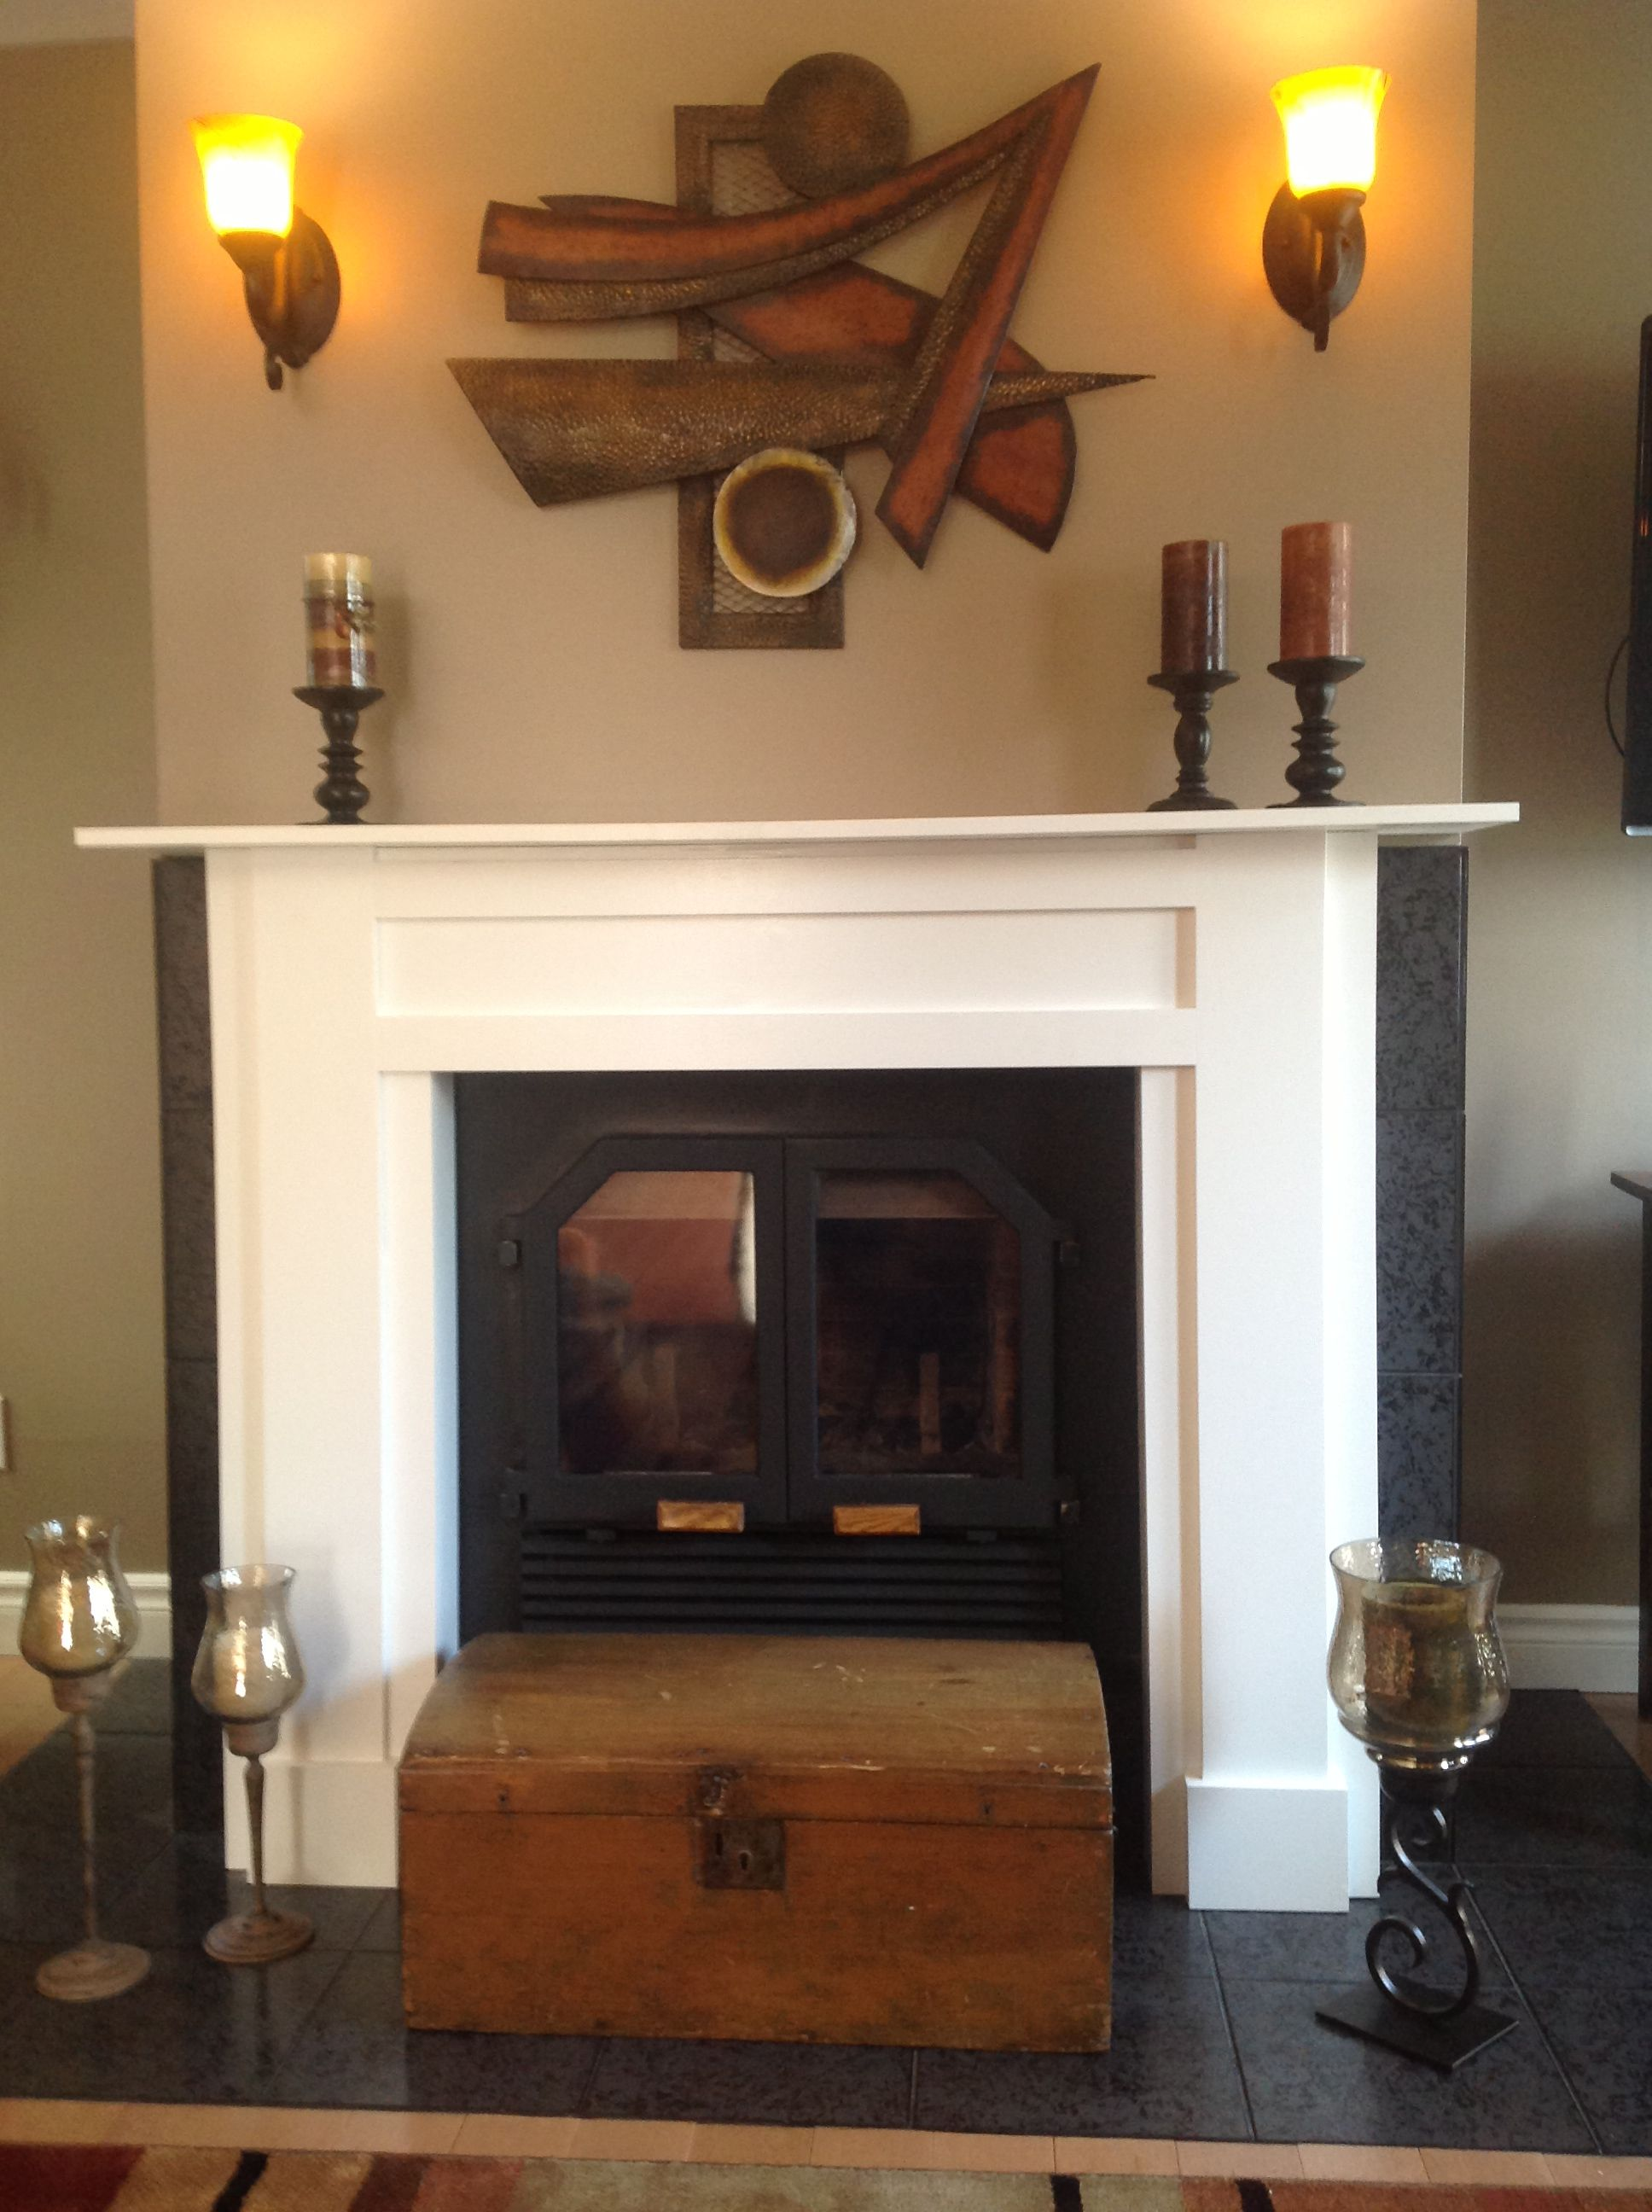 Shaker style fireplace mantel | This old house | Pinterest